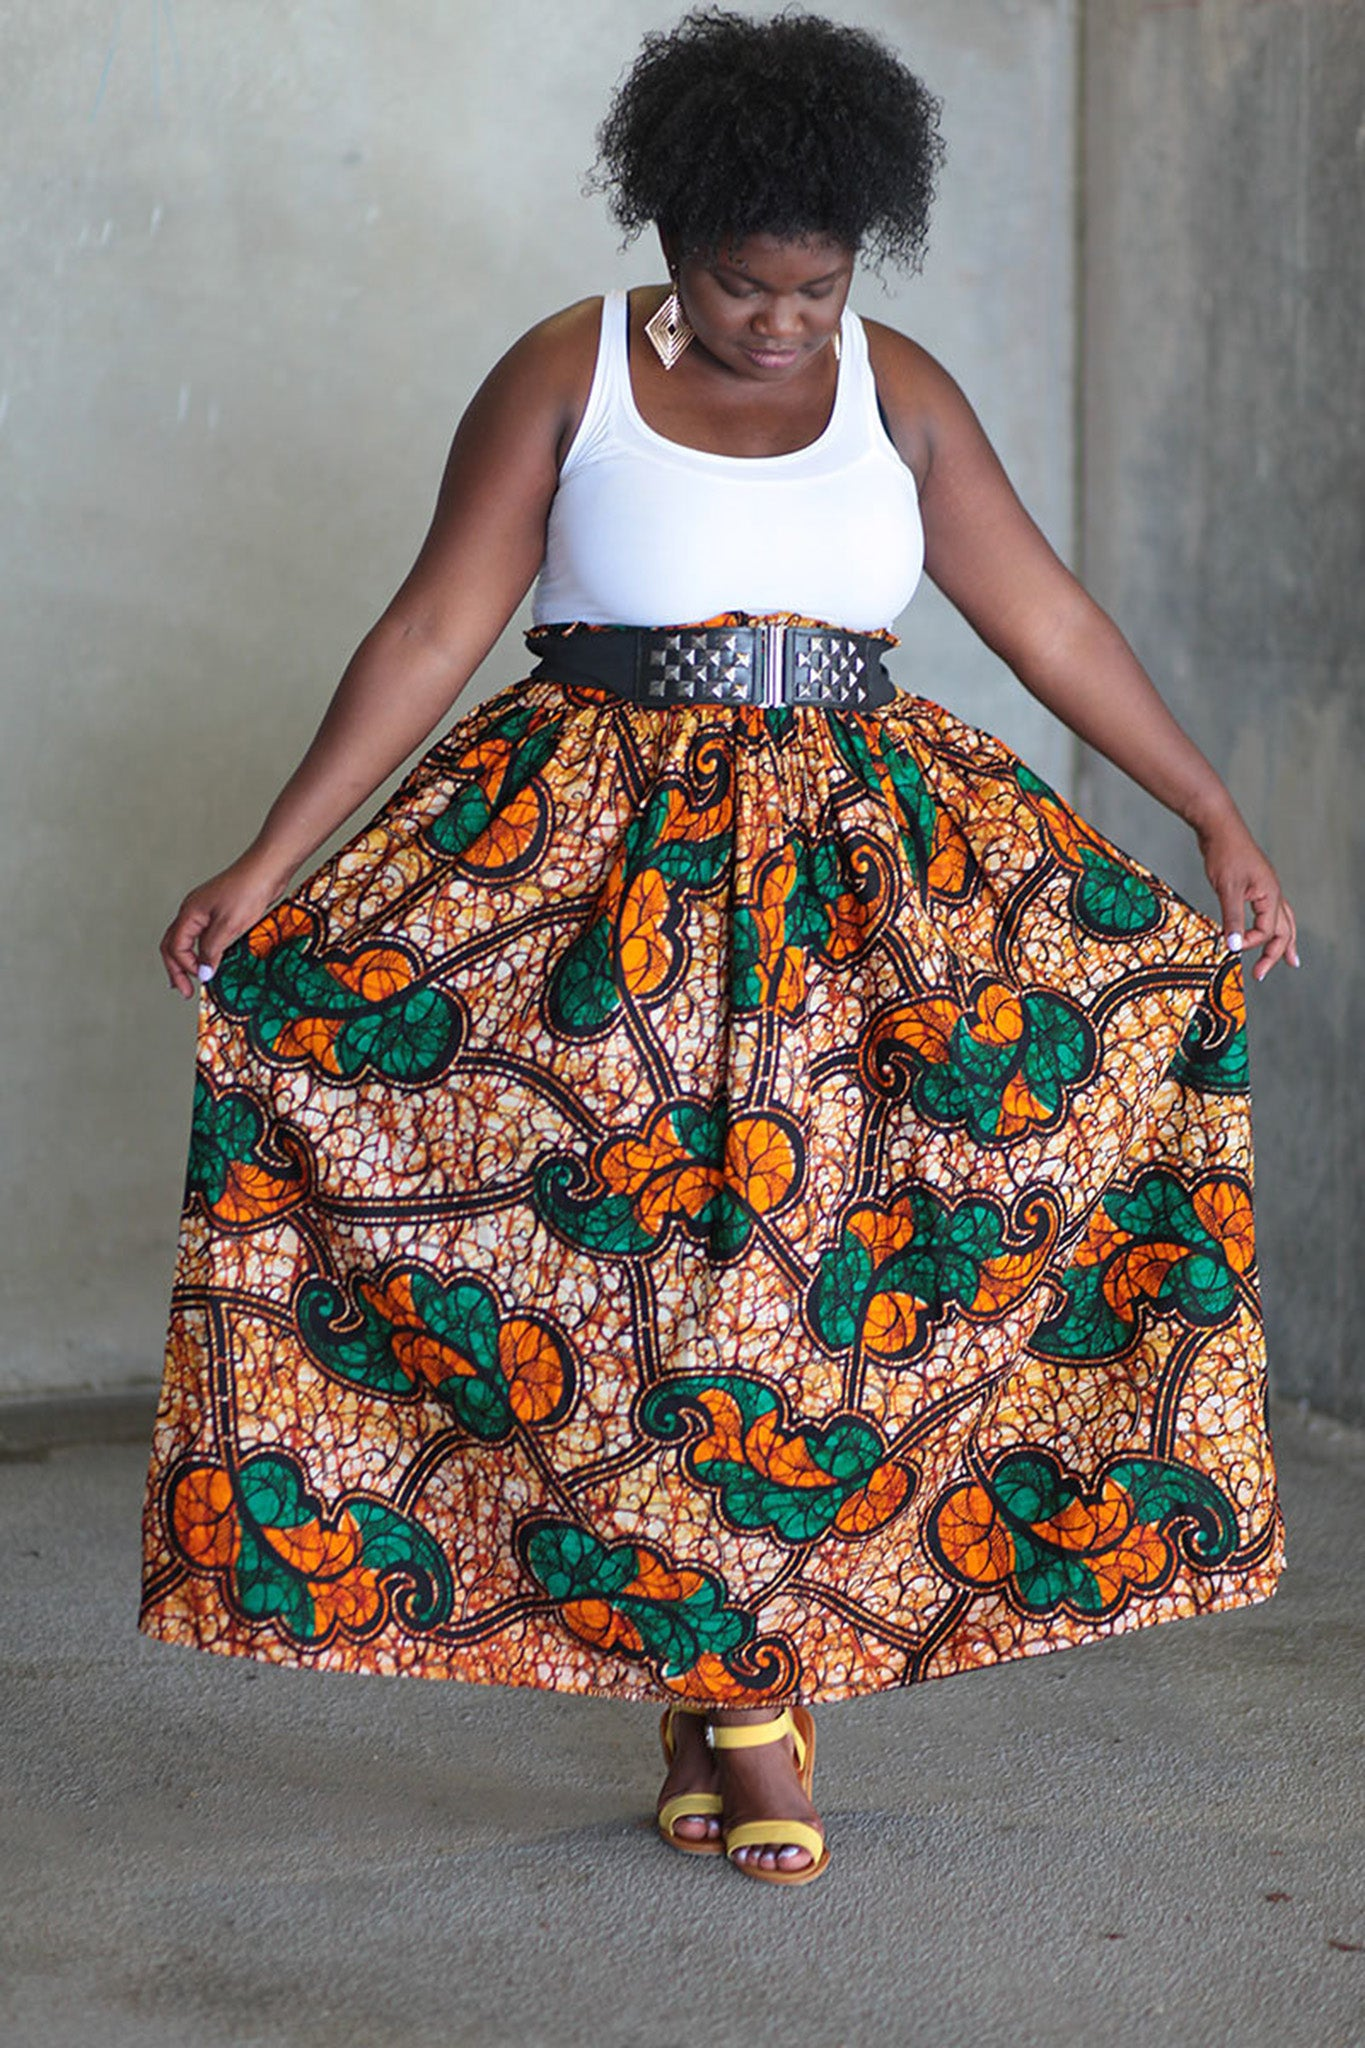 African Print Maxi - Orange/Black/Green Floral Print - Africas Closet